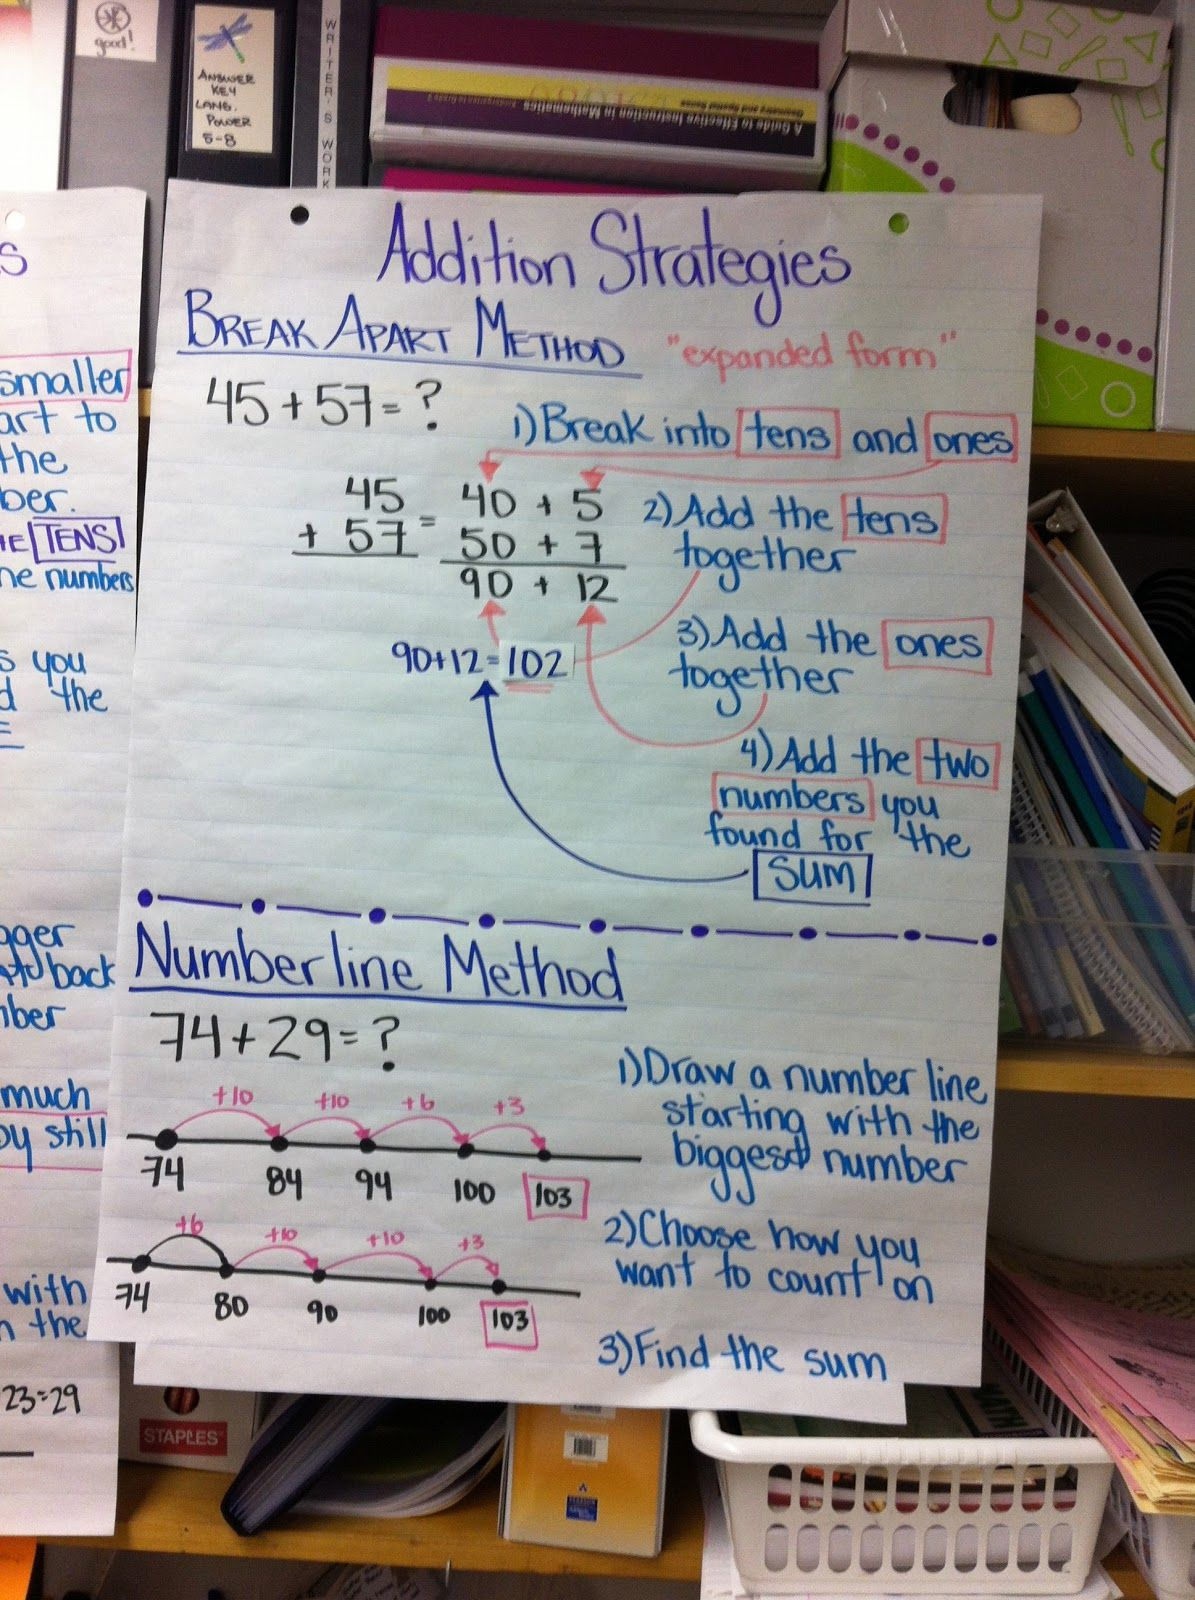 Adding and Subtracting stragies and activities | Teaching ...